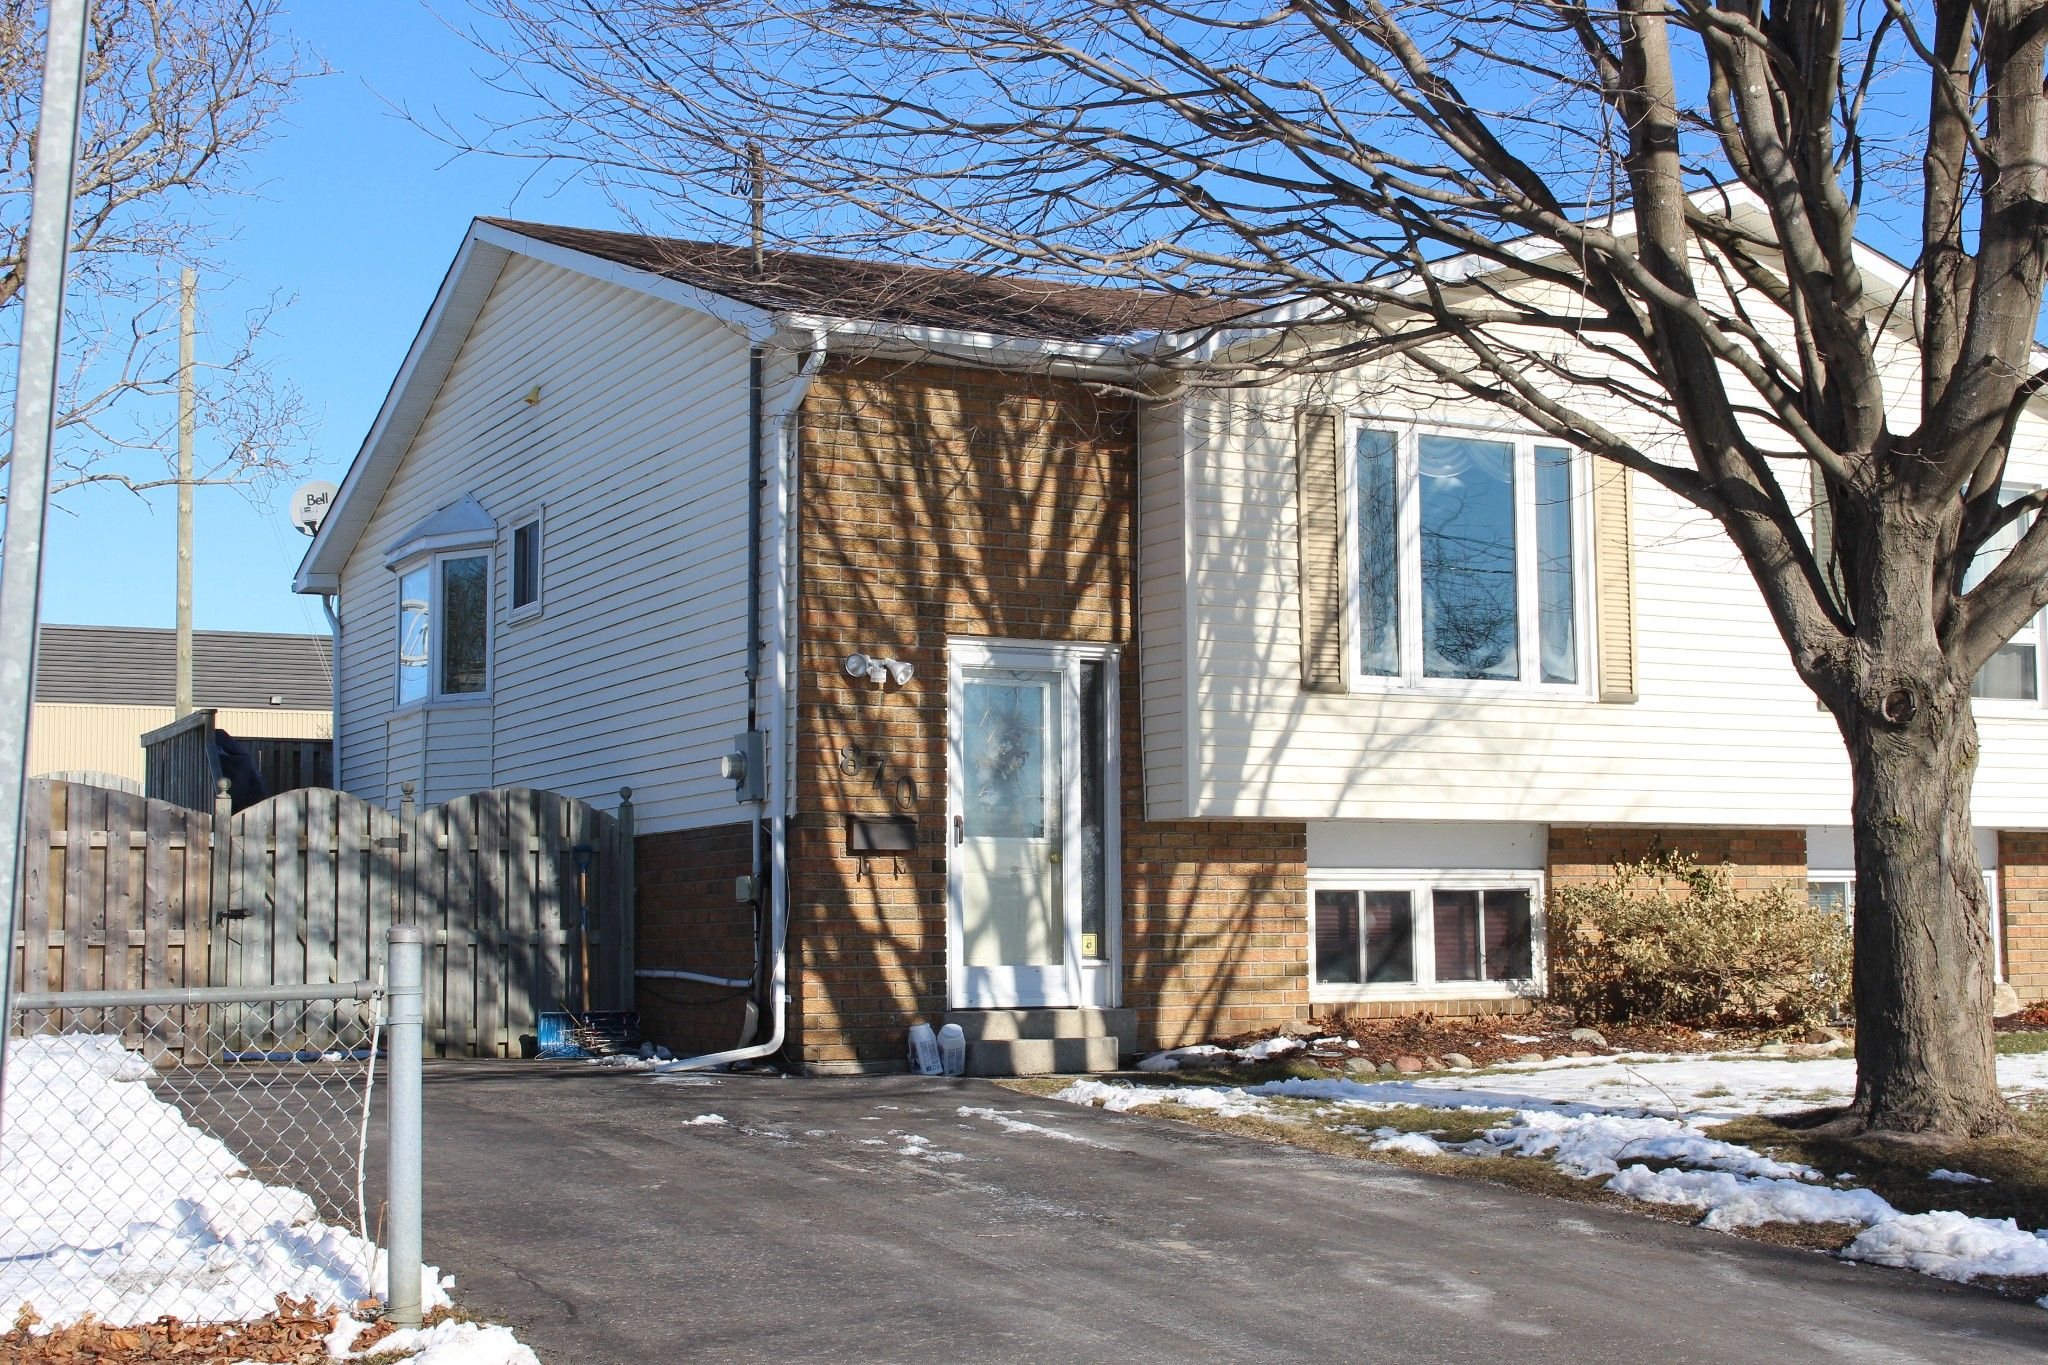 Main Photo: 870 Westwood Cres in Cobourg: Condo for sale : MLS®# 510890072